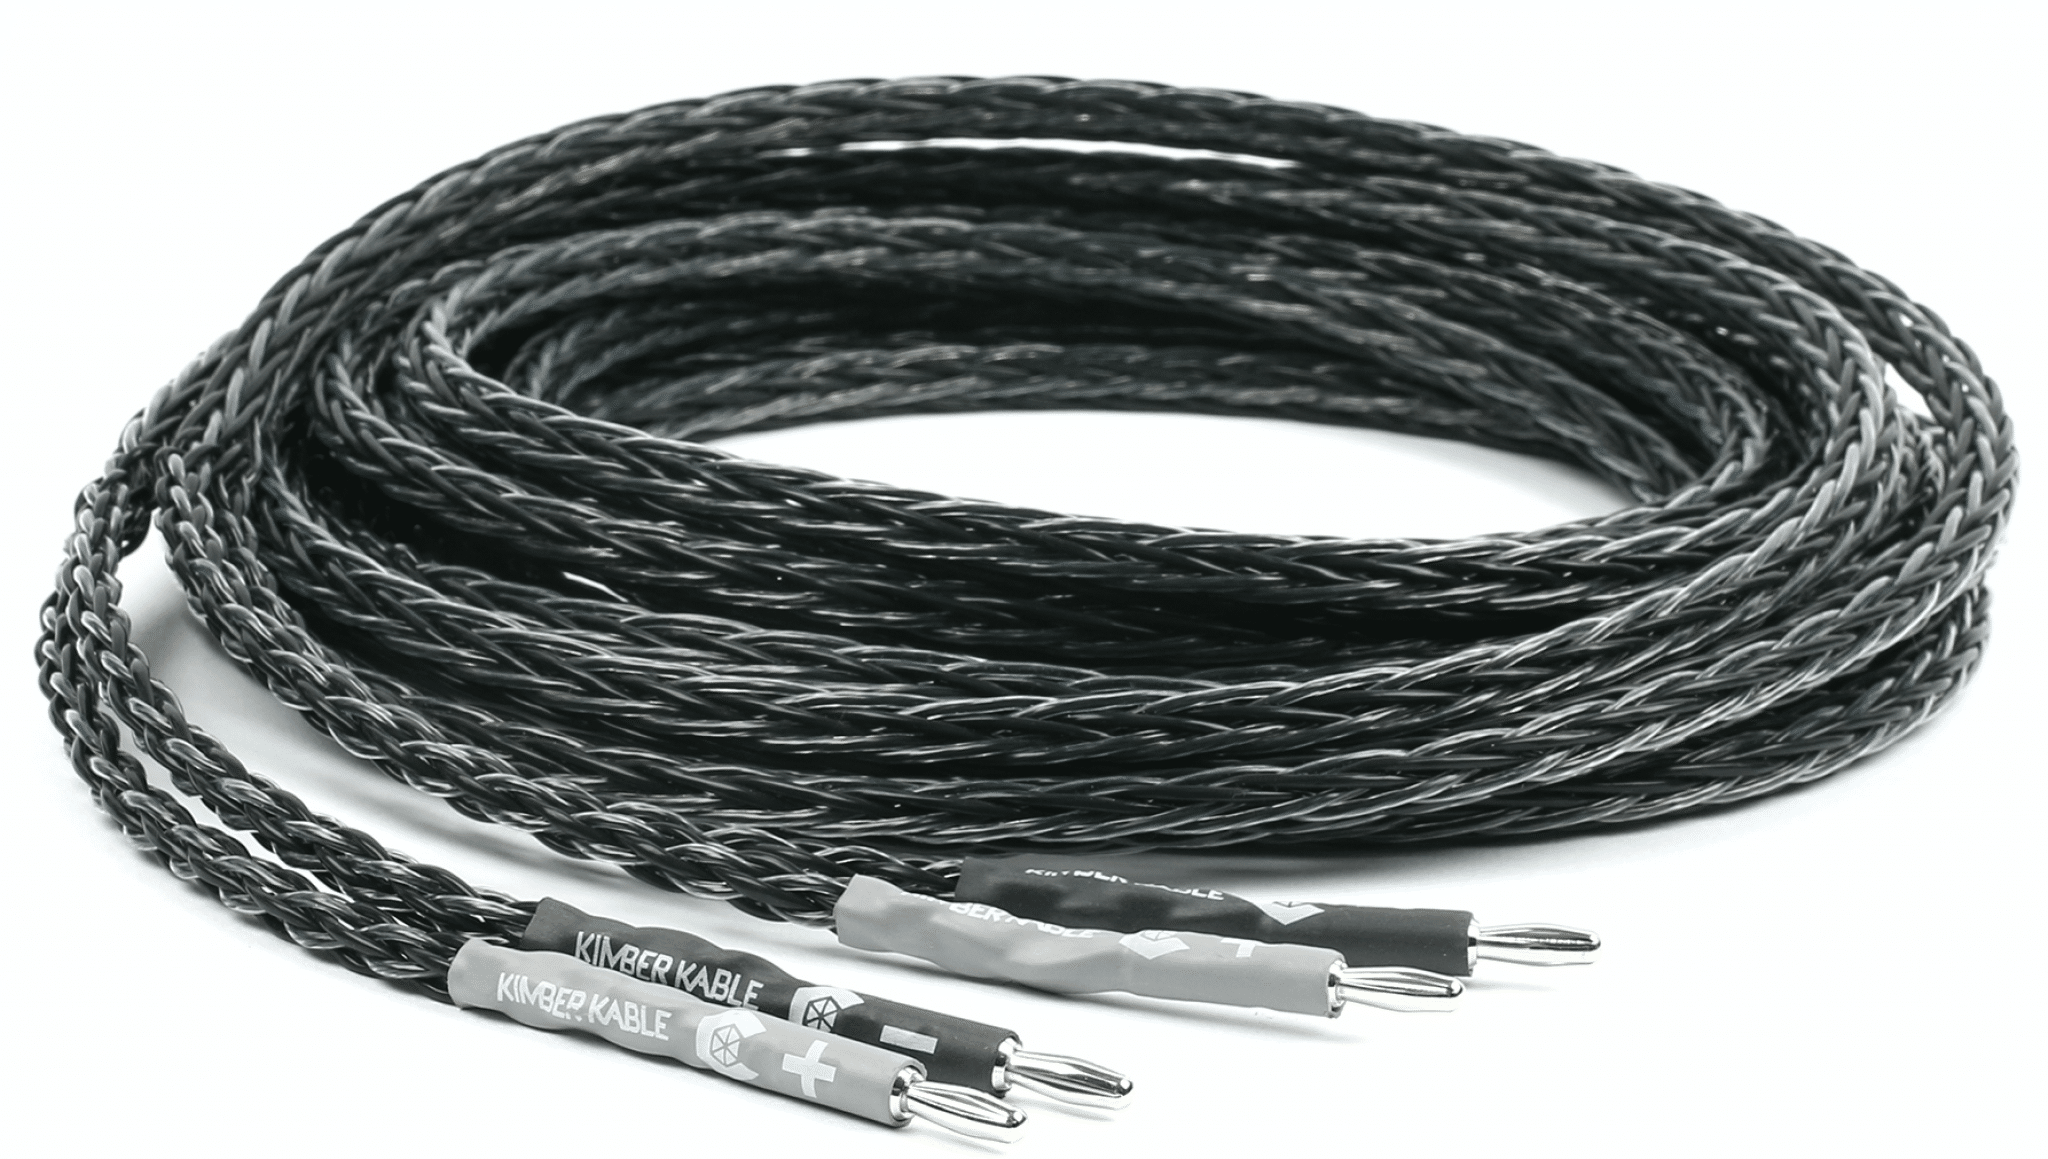 Carbon Speaker Cables From Kimber